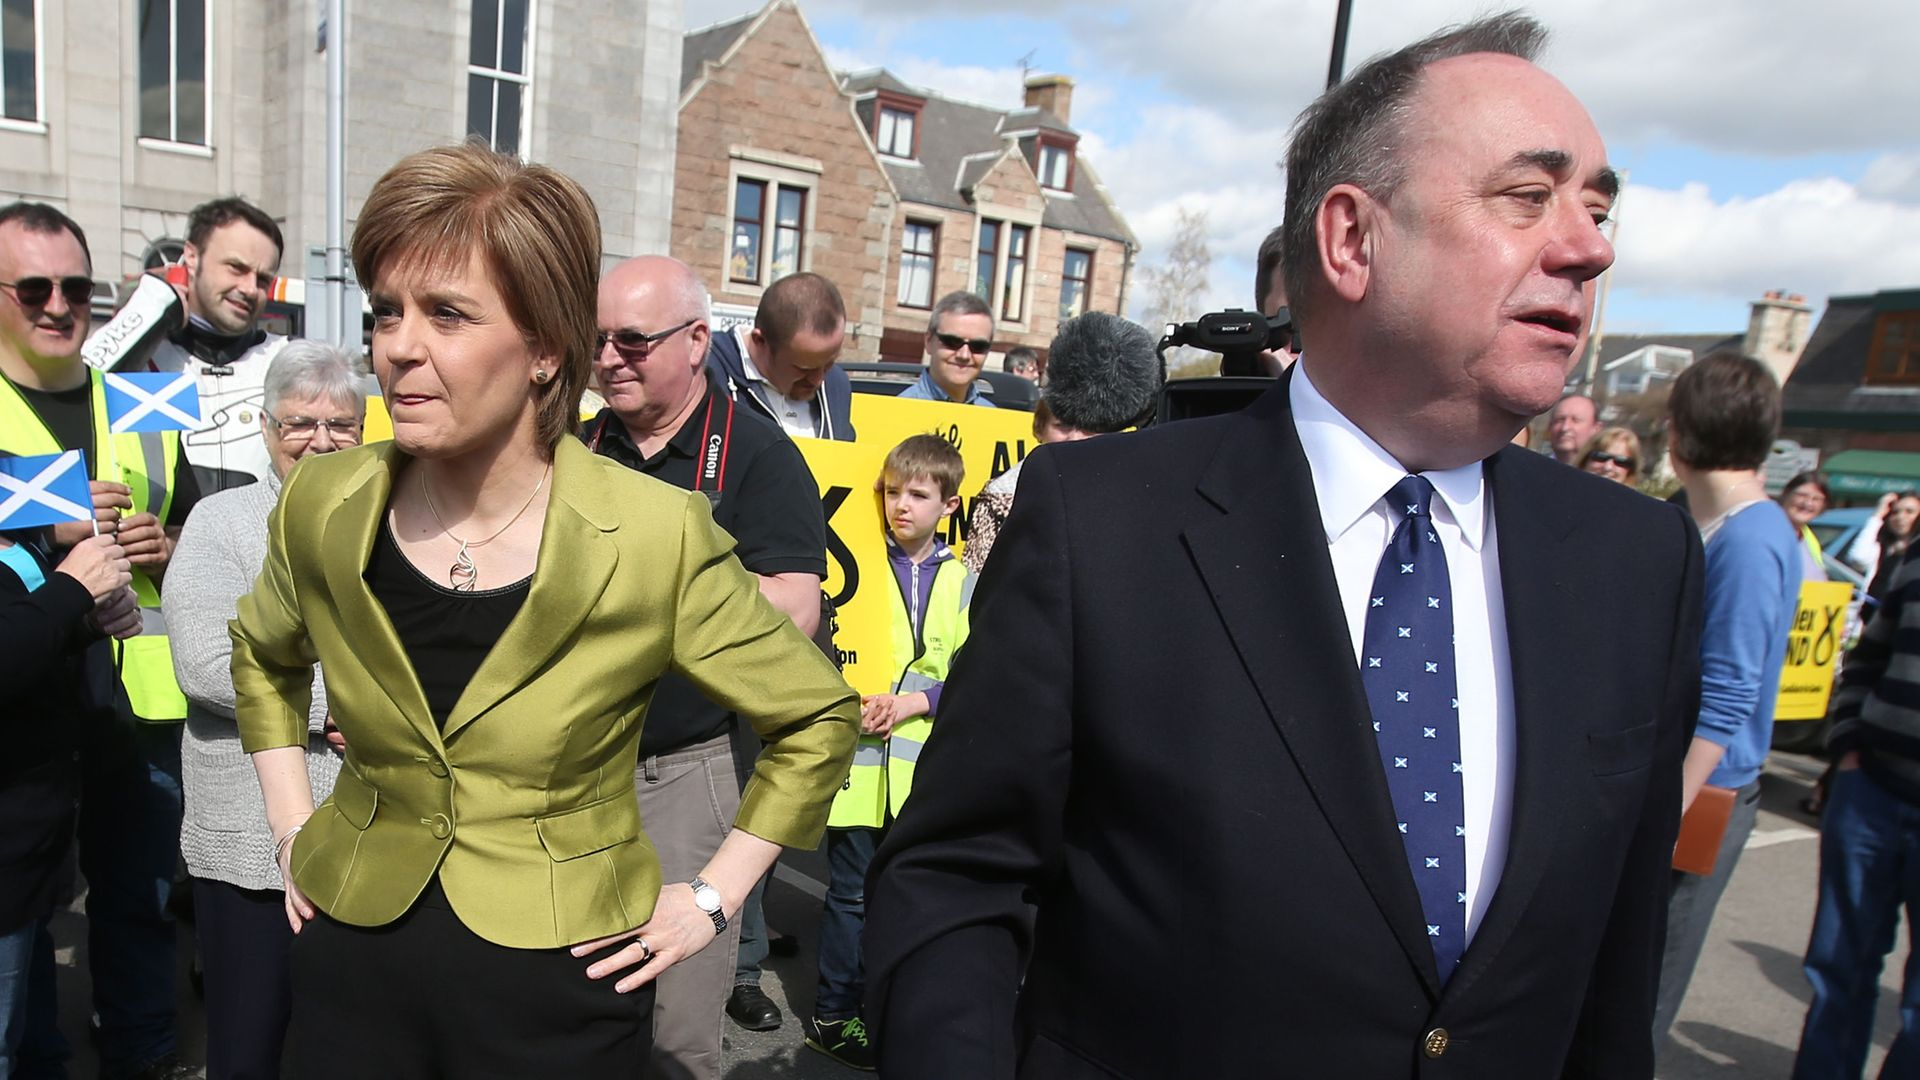 Nicola Sturgeon and Alex Salmond campaigning for the SNP in 2015 - Credit: PA